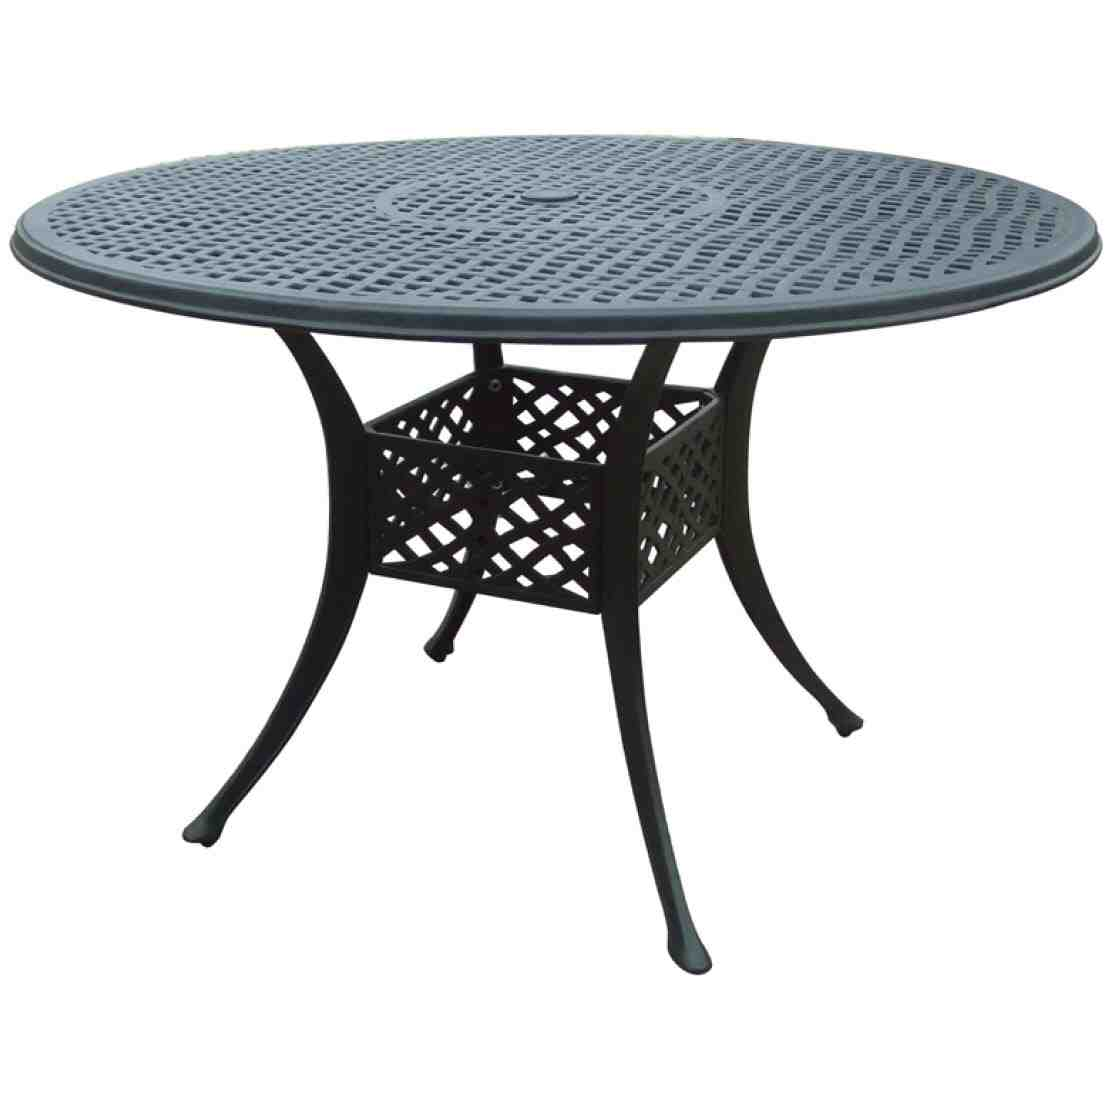 30 New Patio Chairs And Table With Umbrella - pixelmari.com